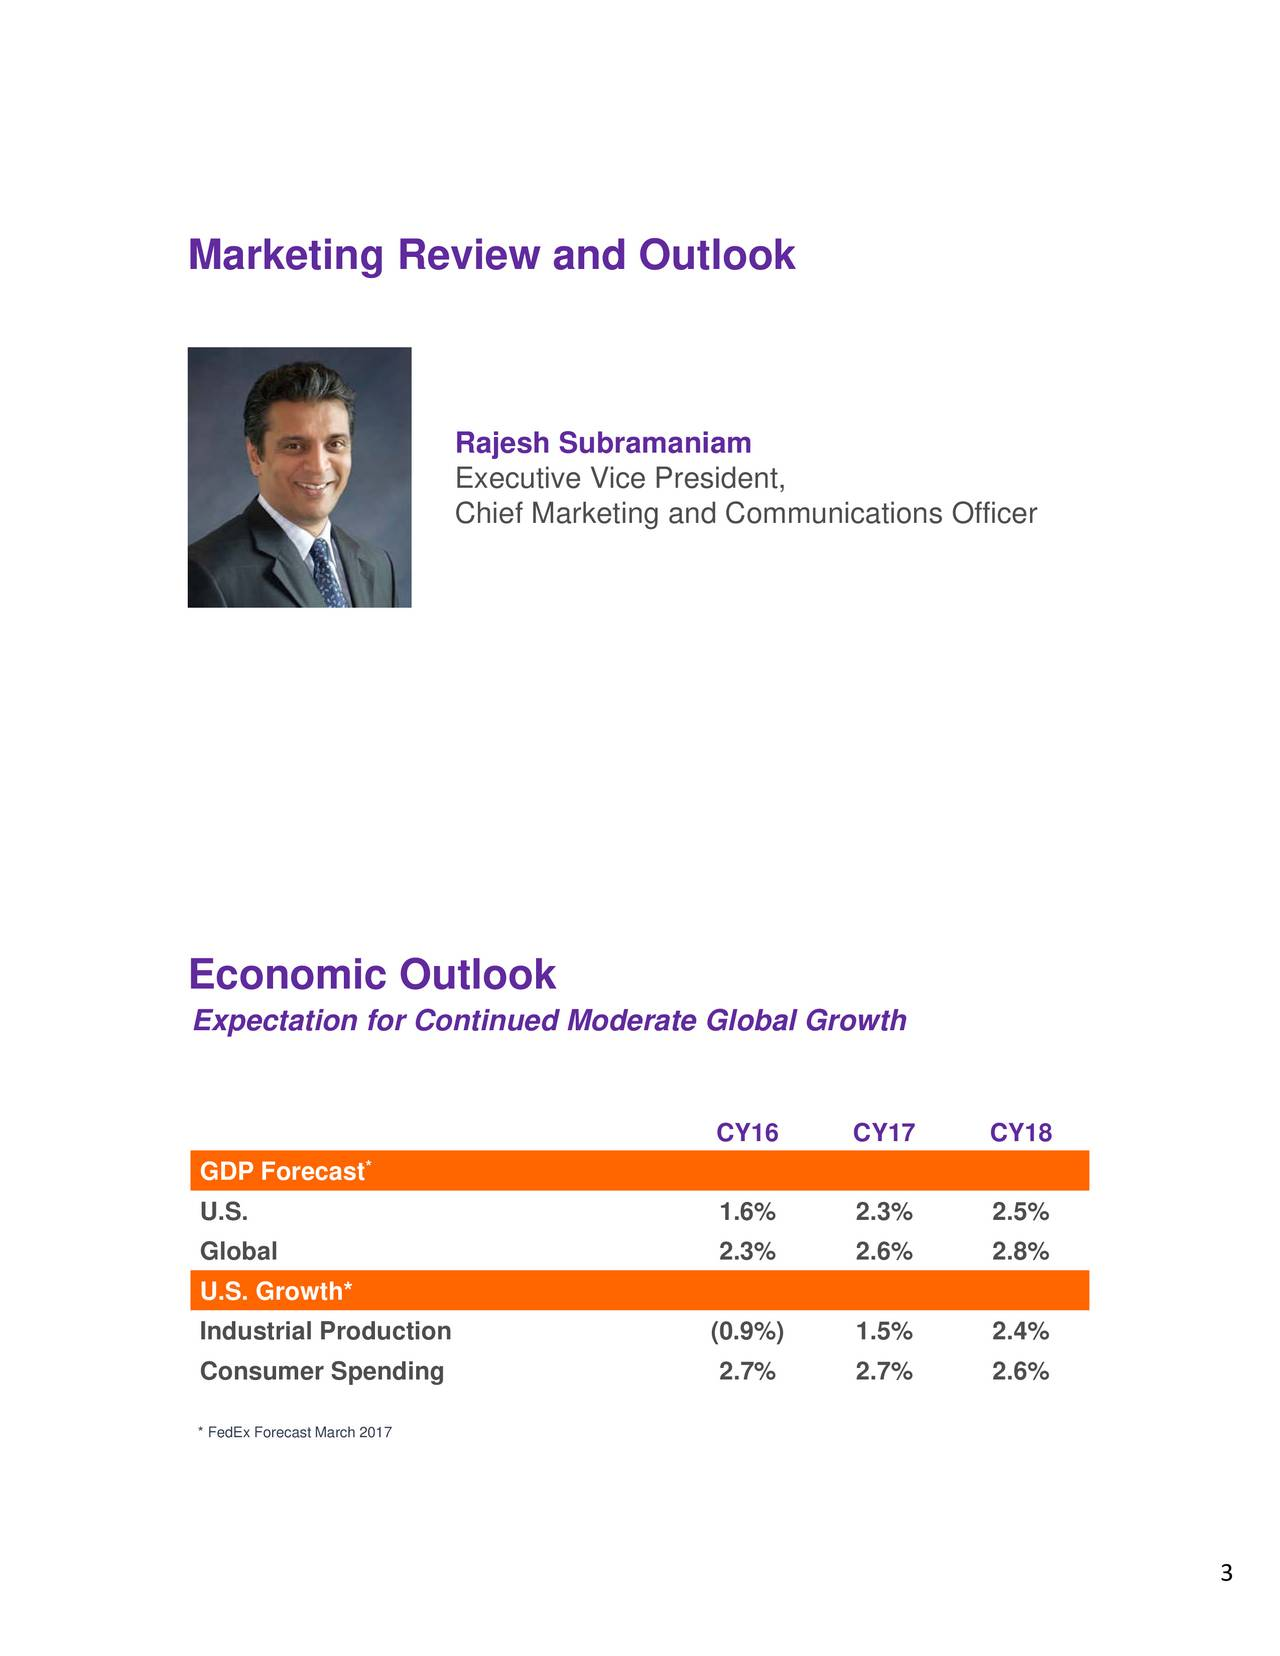 Rajesh Subramaniam Executive Vice President, Chief Marketing and Communications Officer Economic Outlook Expectation for Continued Moderate Global Growth CY16 CY17 CY18 * GDP Forecast U.S. 1.6% 2.3% 2.5% Global 2.3% 2.6% 2.8% U.S. Growth* Industrial Production (0.9%) 1.5% 2.4% Consumer Spending 2.7% 2.7% 2.6% * FedEx Forecast March 2017 3